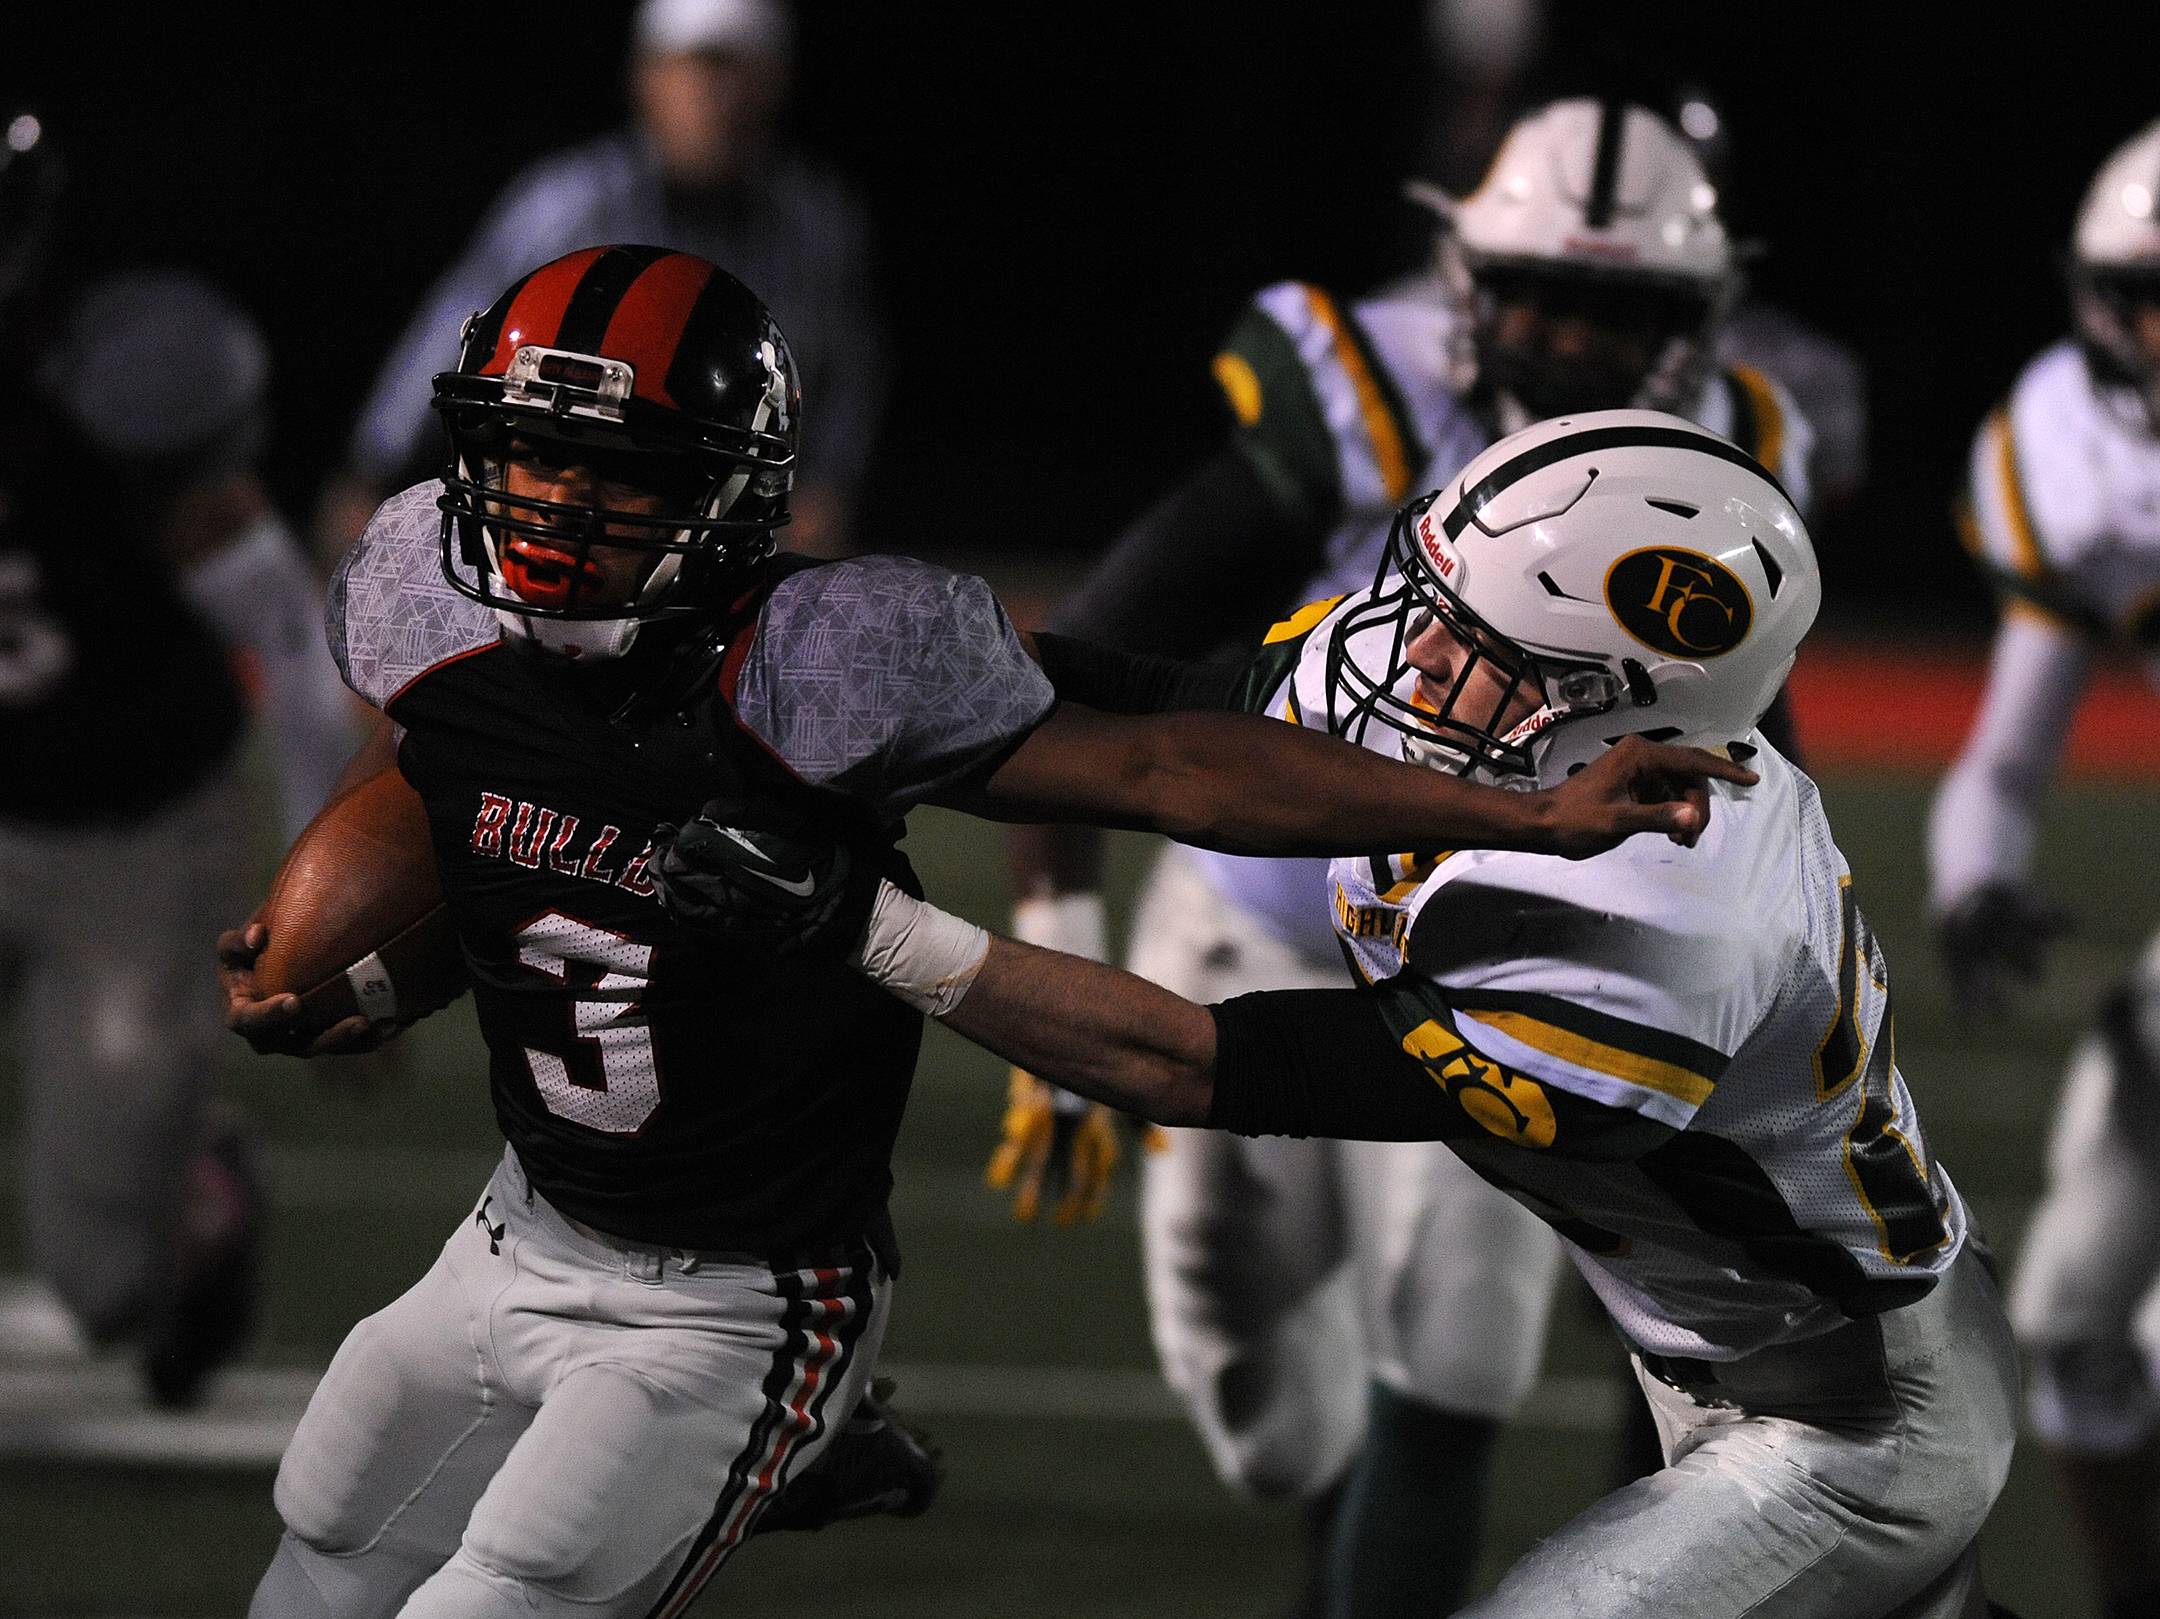 New Albany's Rondale Moore (3) fights for yardage against Floyd Central on Friday at New Albany High School. Photo by David Lee Hartlage/Special to the Courier-journal. Oct. 16, 2015